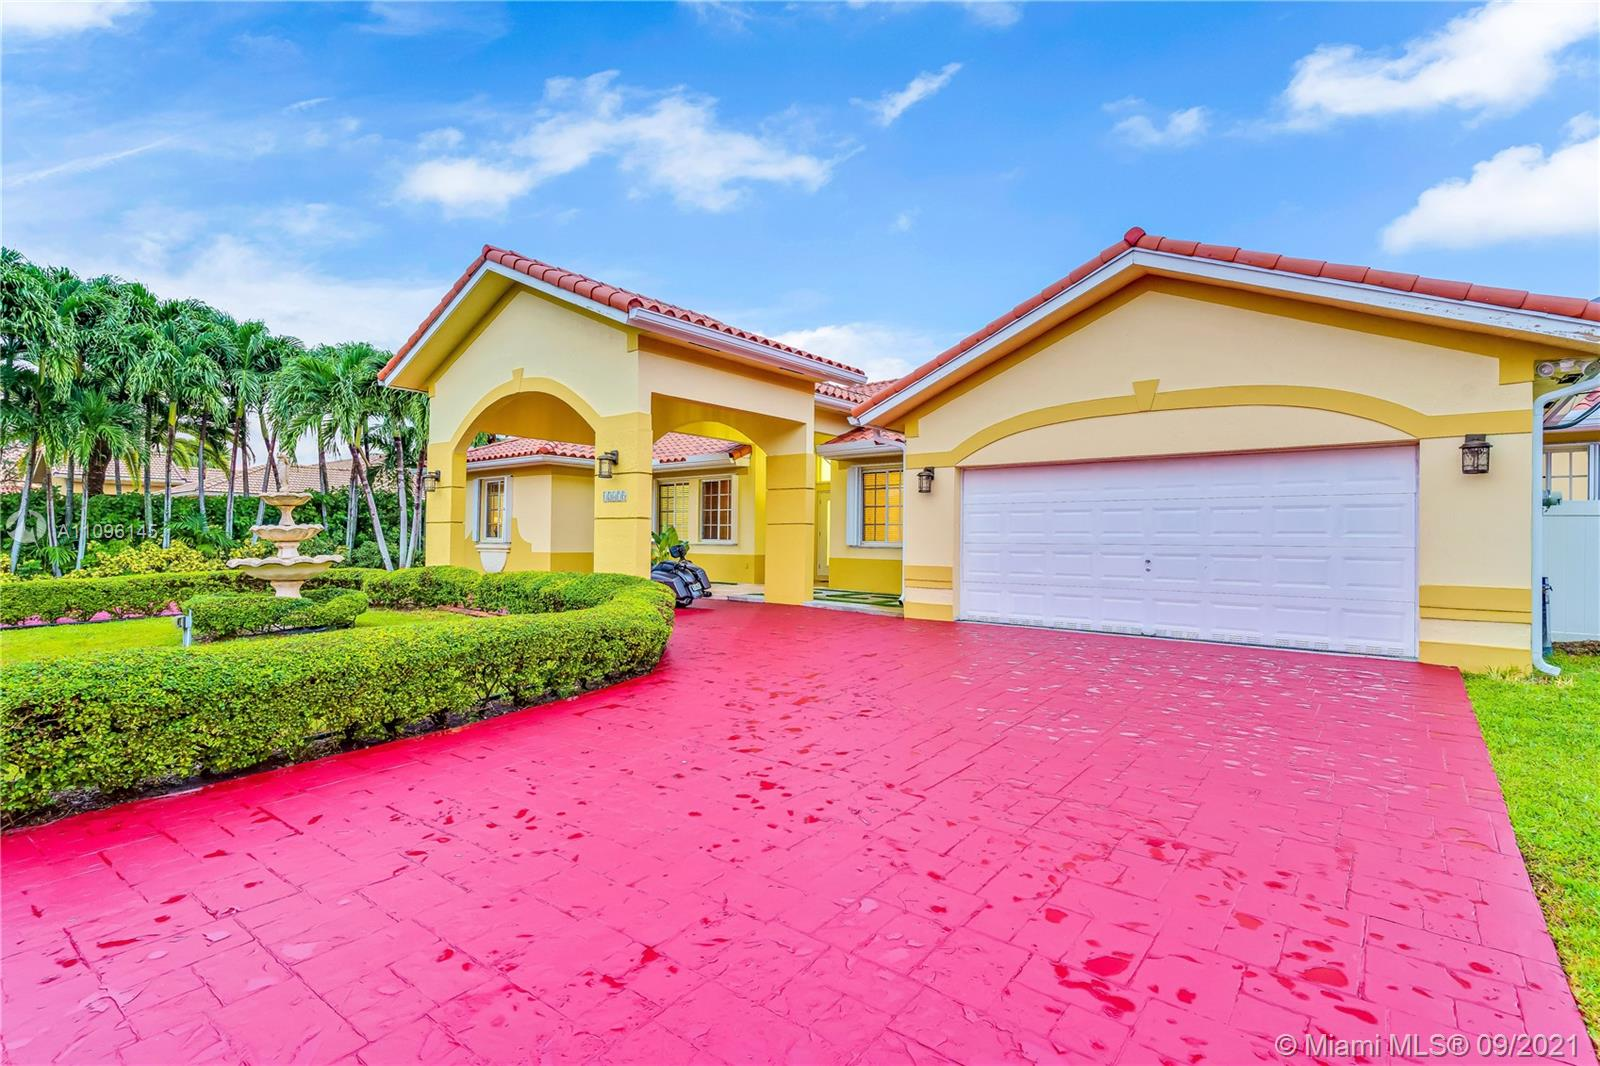 Single Family Home,For Sale,12475 NW 6th St, Miami, Florida 33182,Brickell,realty,broker,condos near me